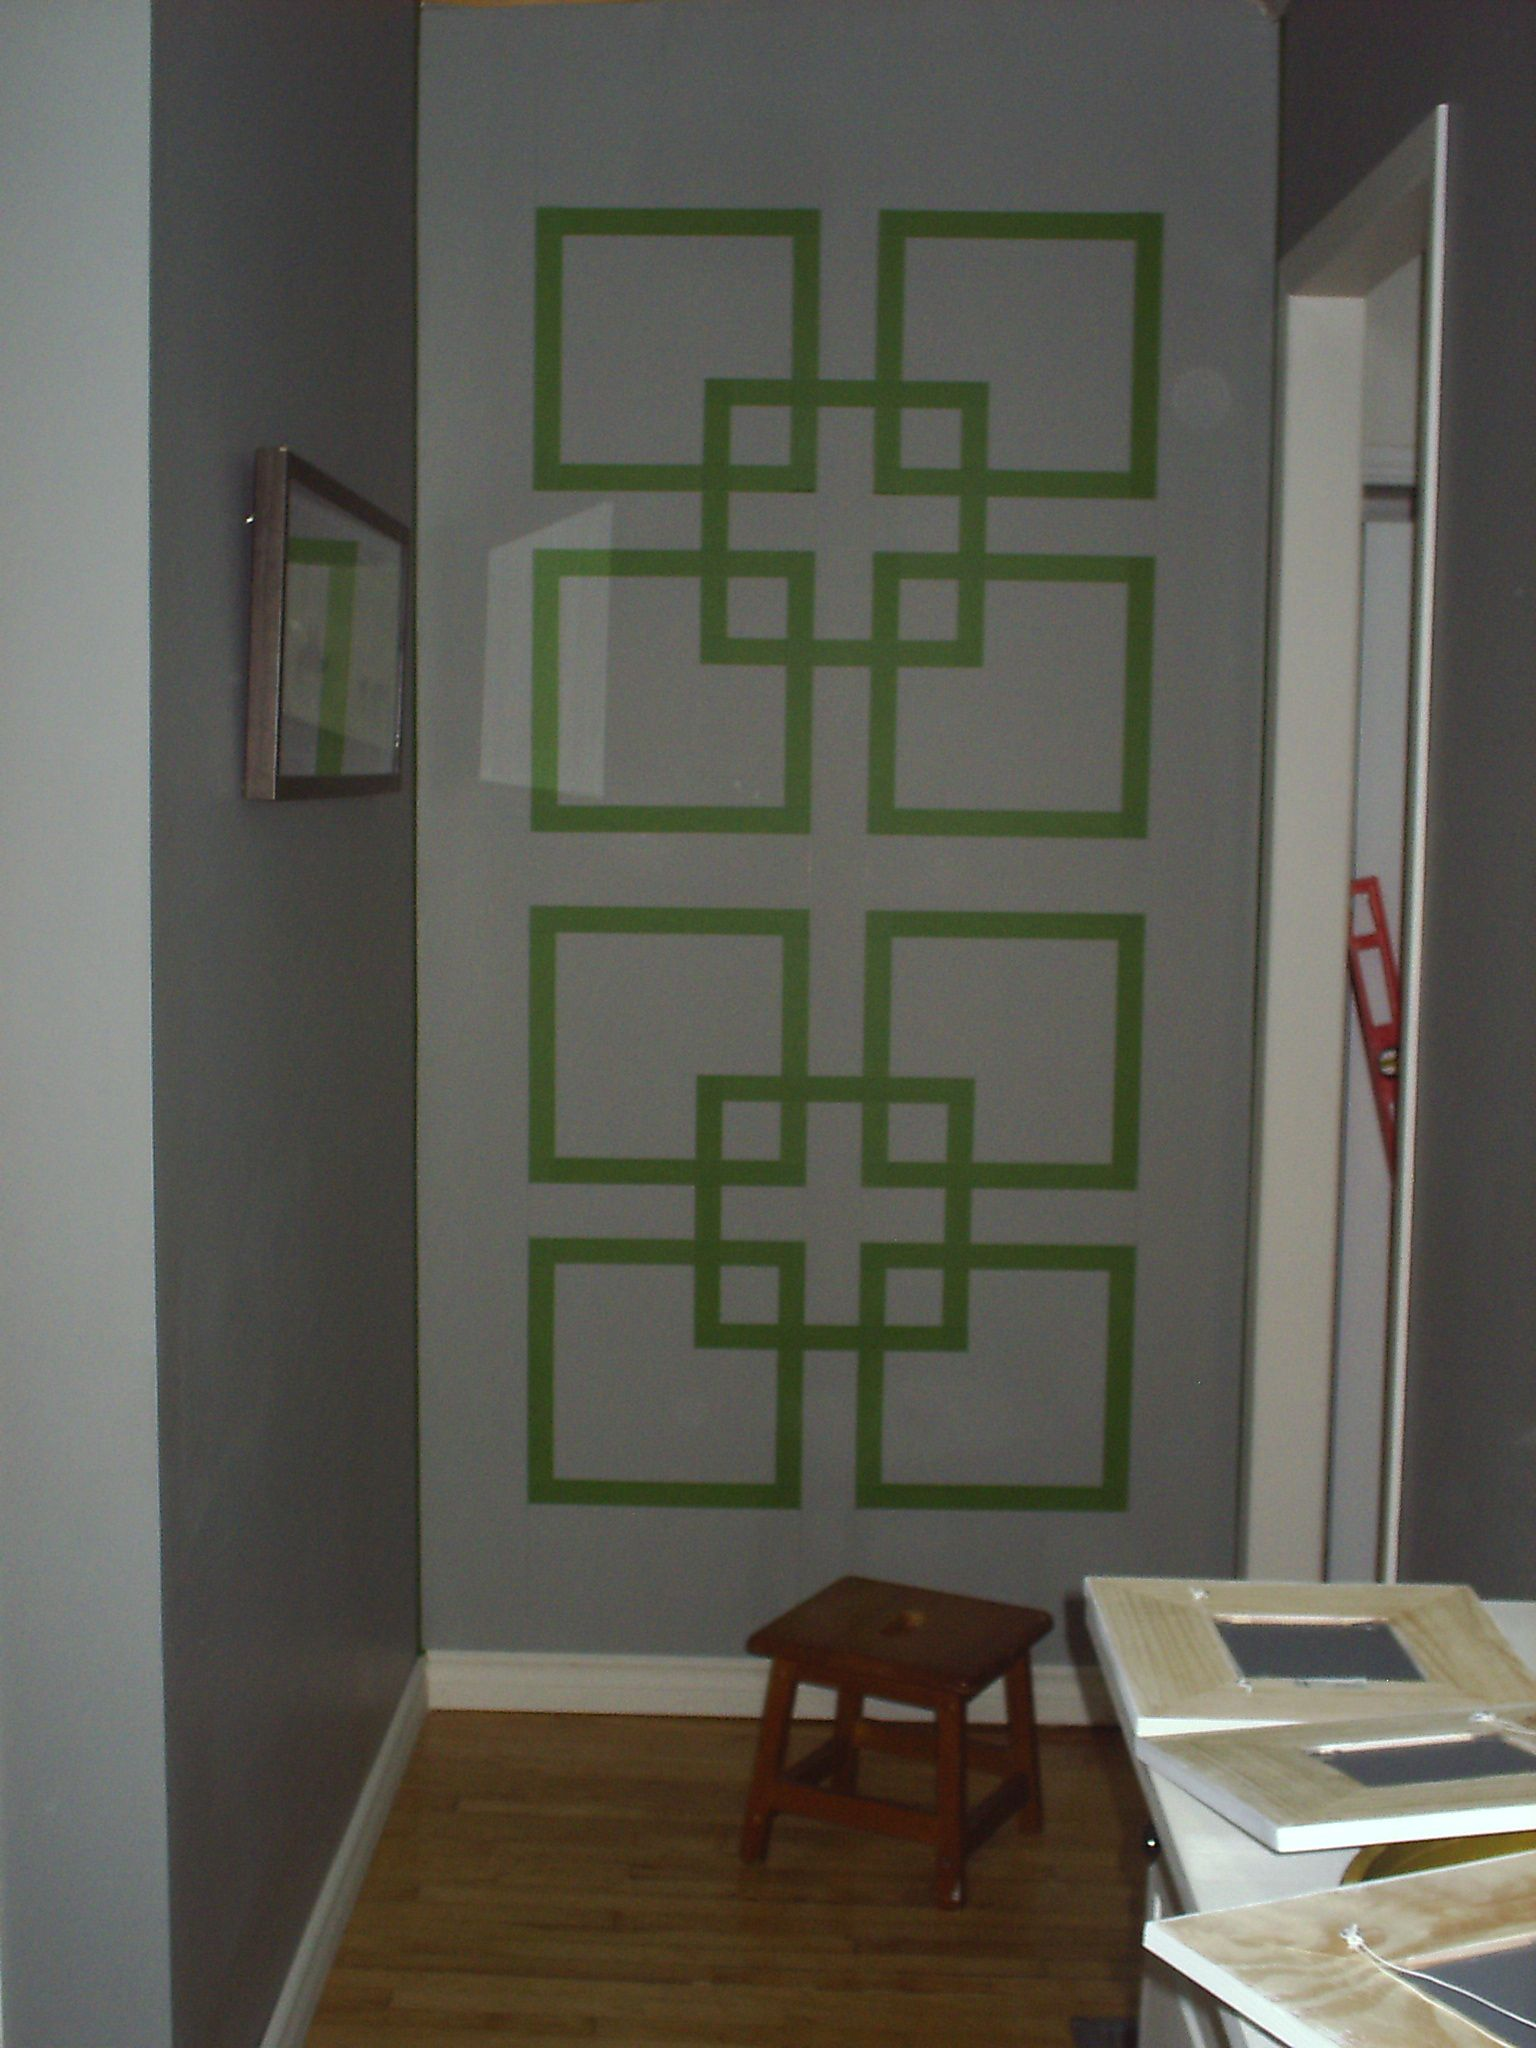 Home Design Graphic Statement Wall Paint Designs On Walls With Tape Ideas  Pleasing Paint Designs On Walls With Tape Ideas Paint Designs On Walls With  Tape ...